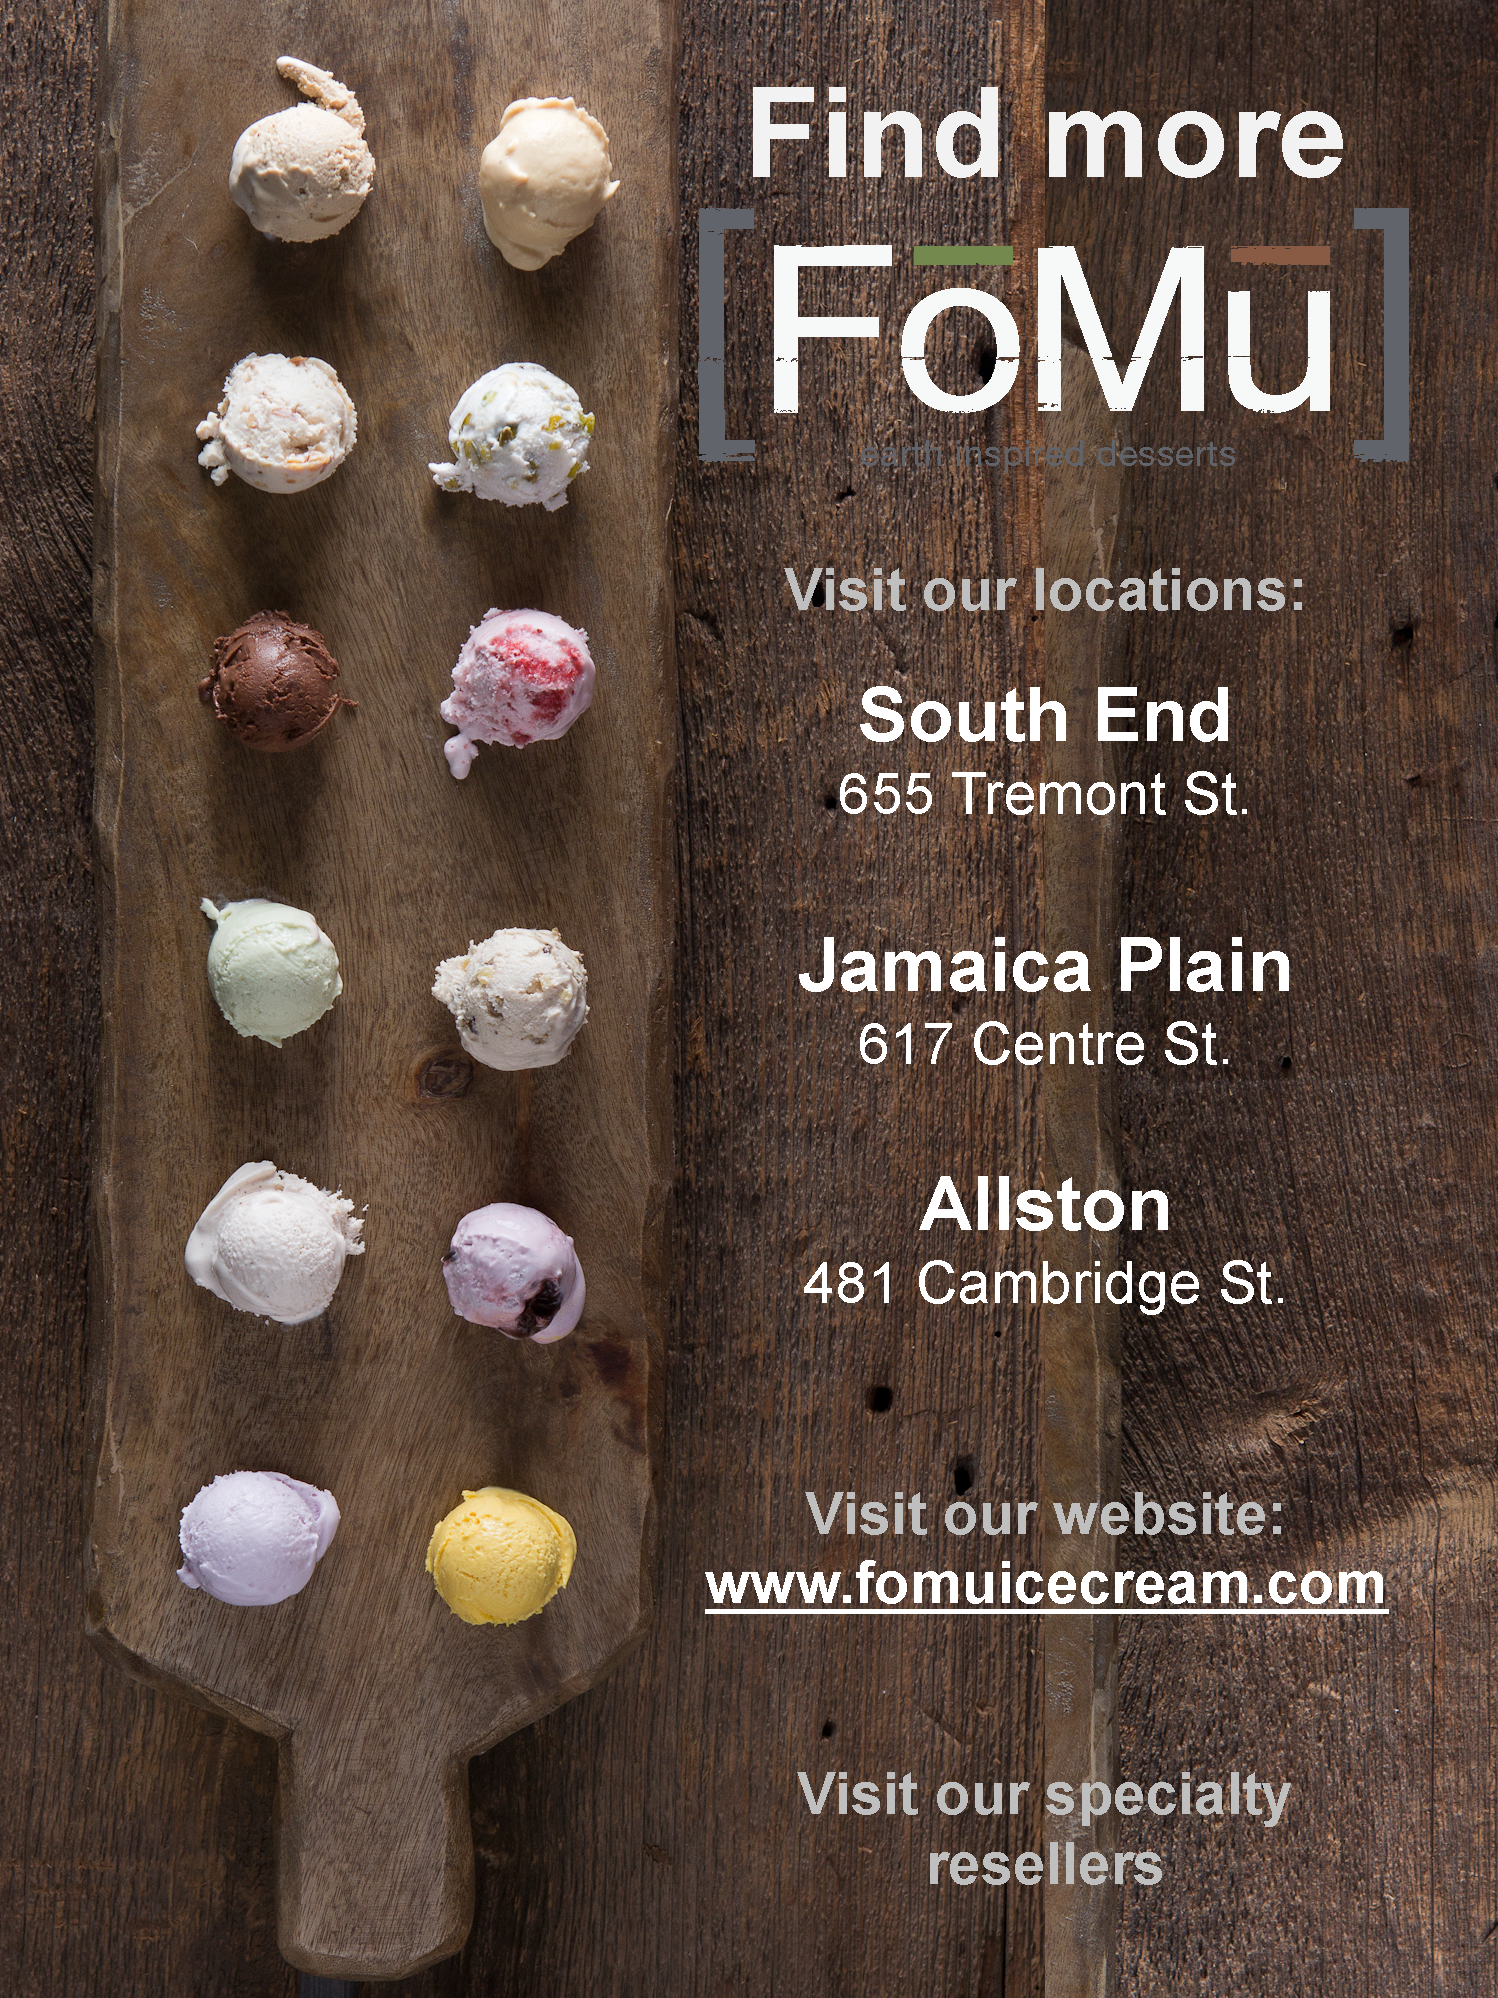 Where to find us FoMu.png